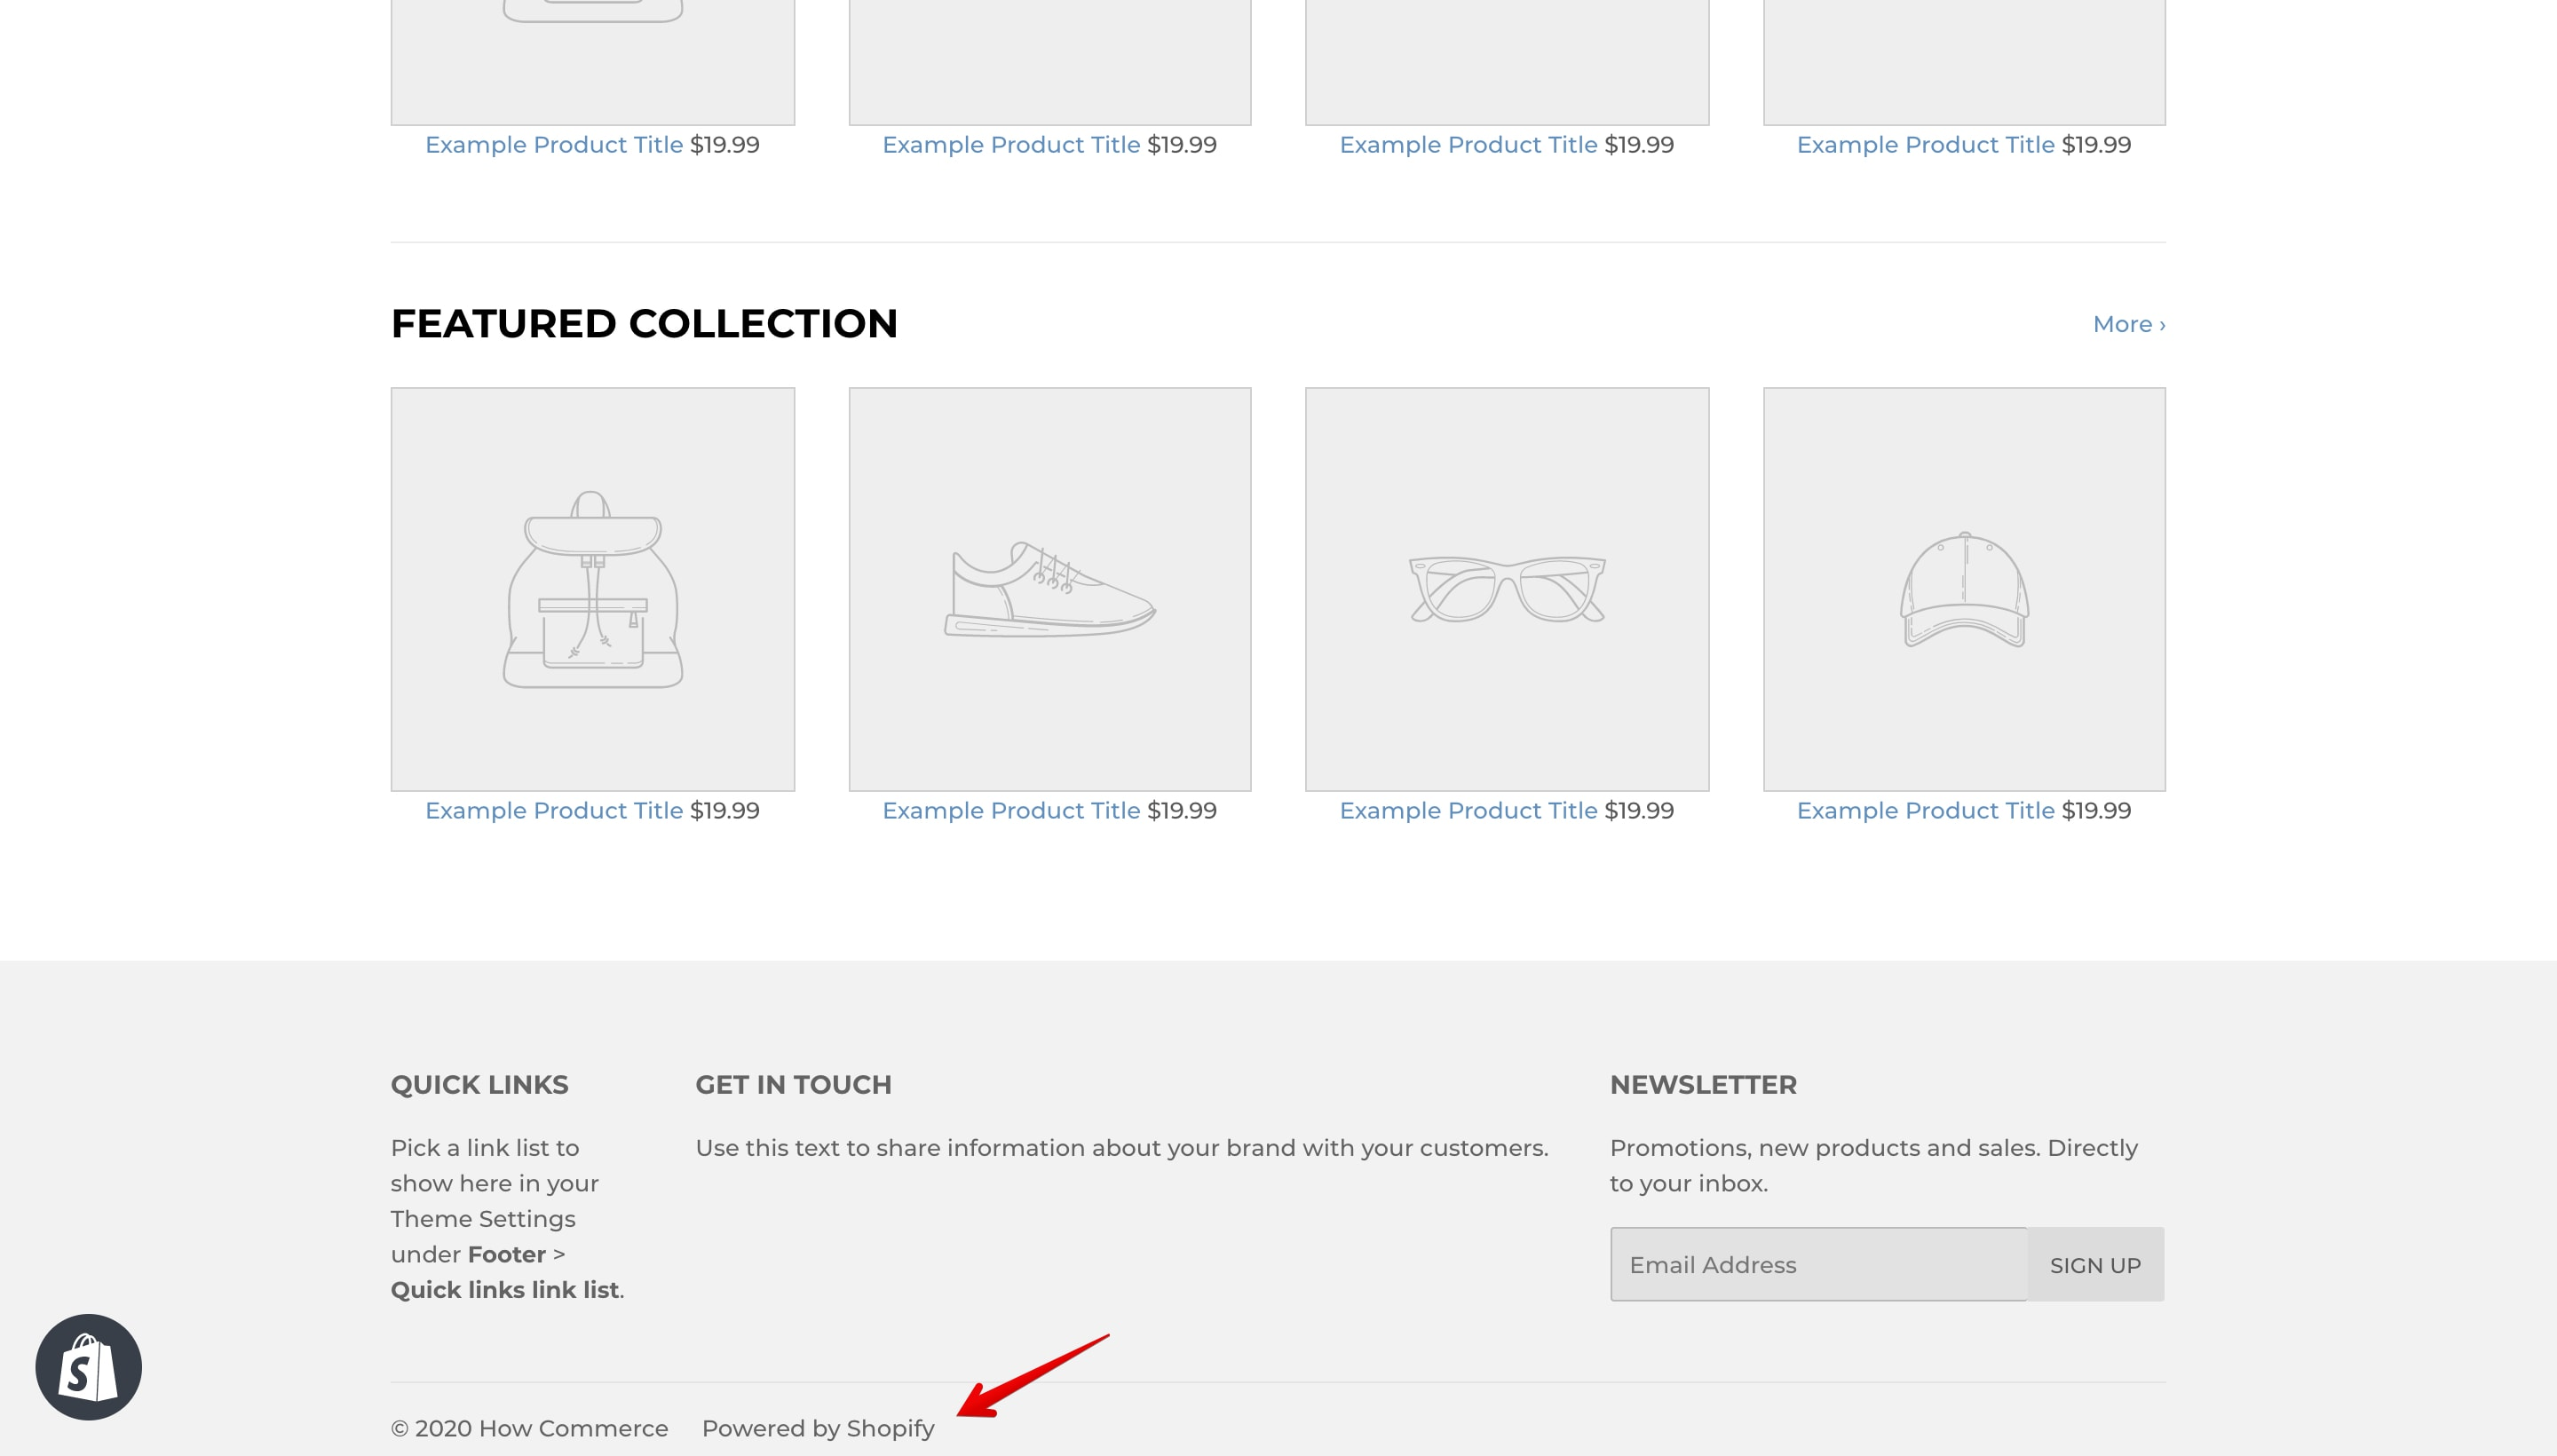 """Supply theme """"Powered by Shopify"""" copyright."""